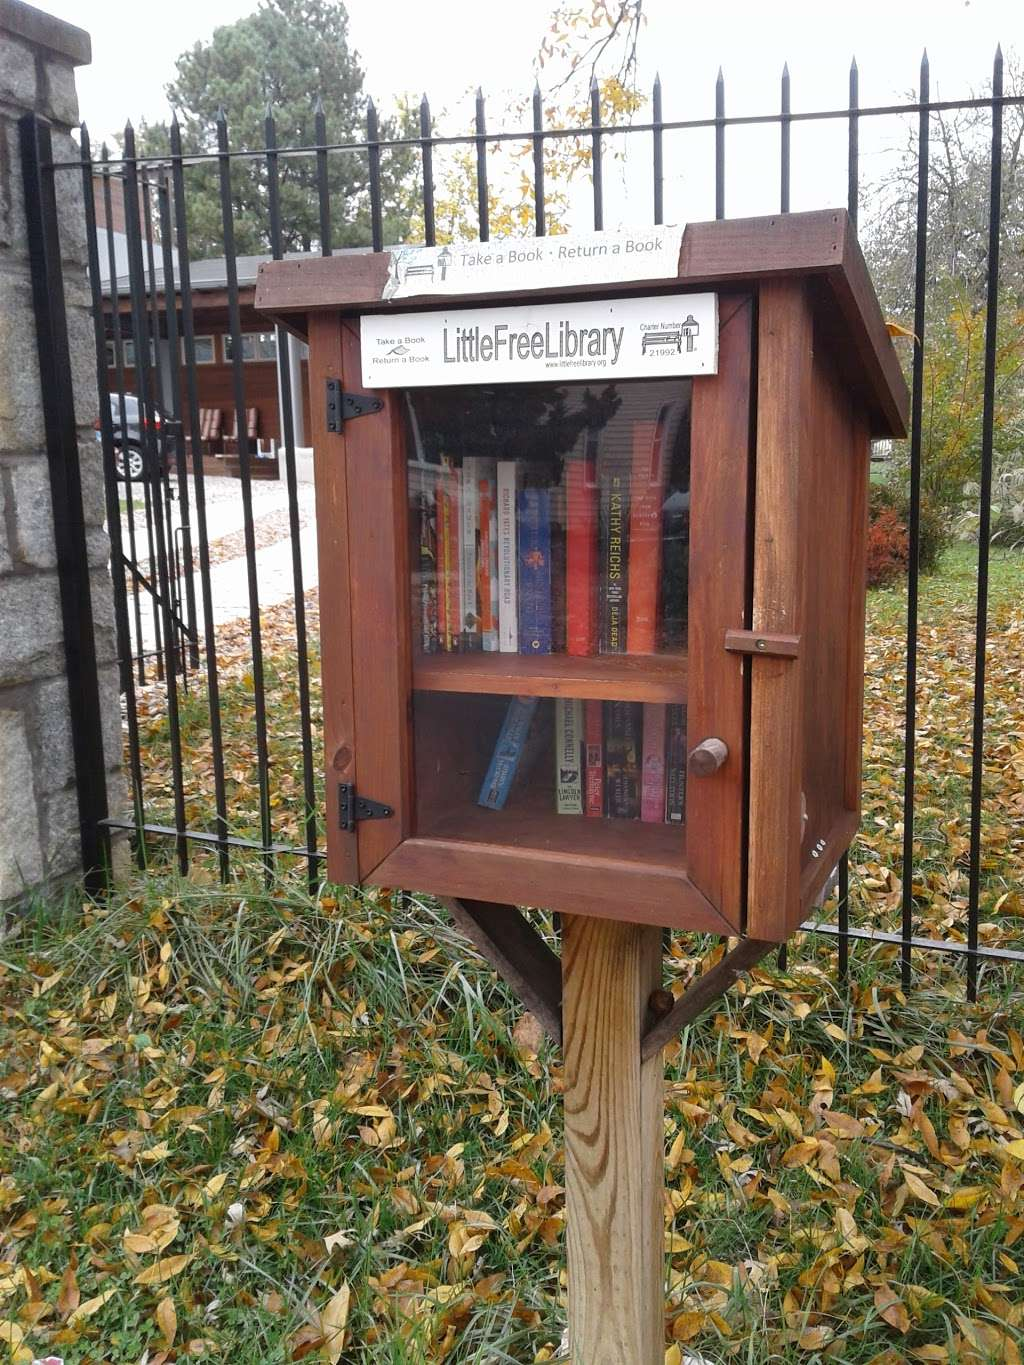 Little Free Library #21992 - library  | Photo 1 of 1 | Address: 627 Ritchie Ave, Silver Spring, MD 20910, USA